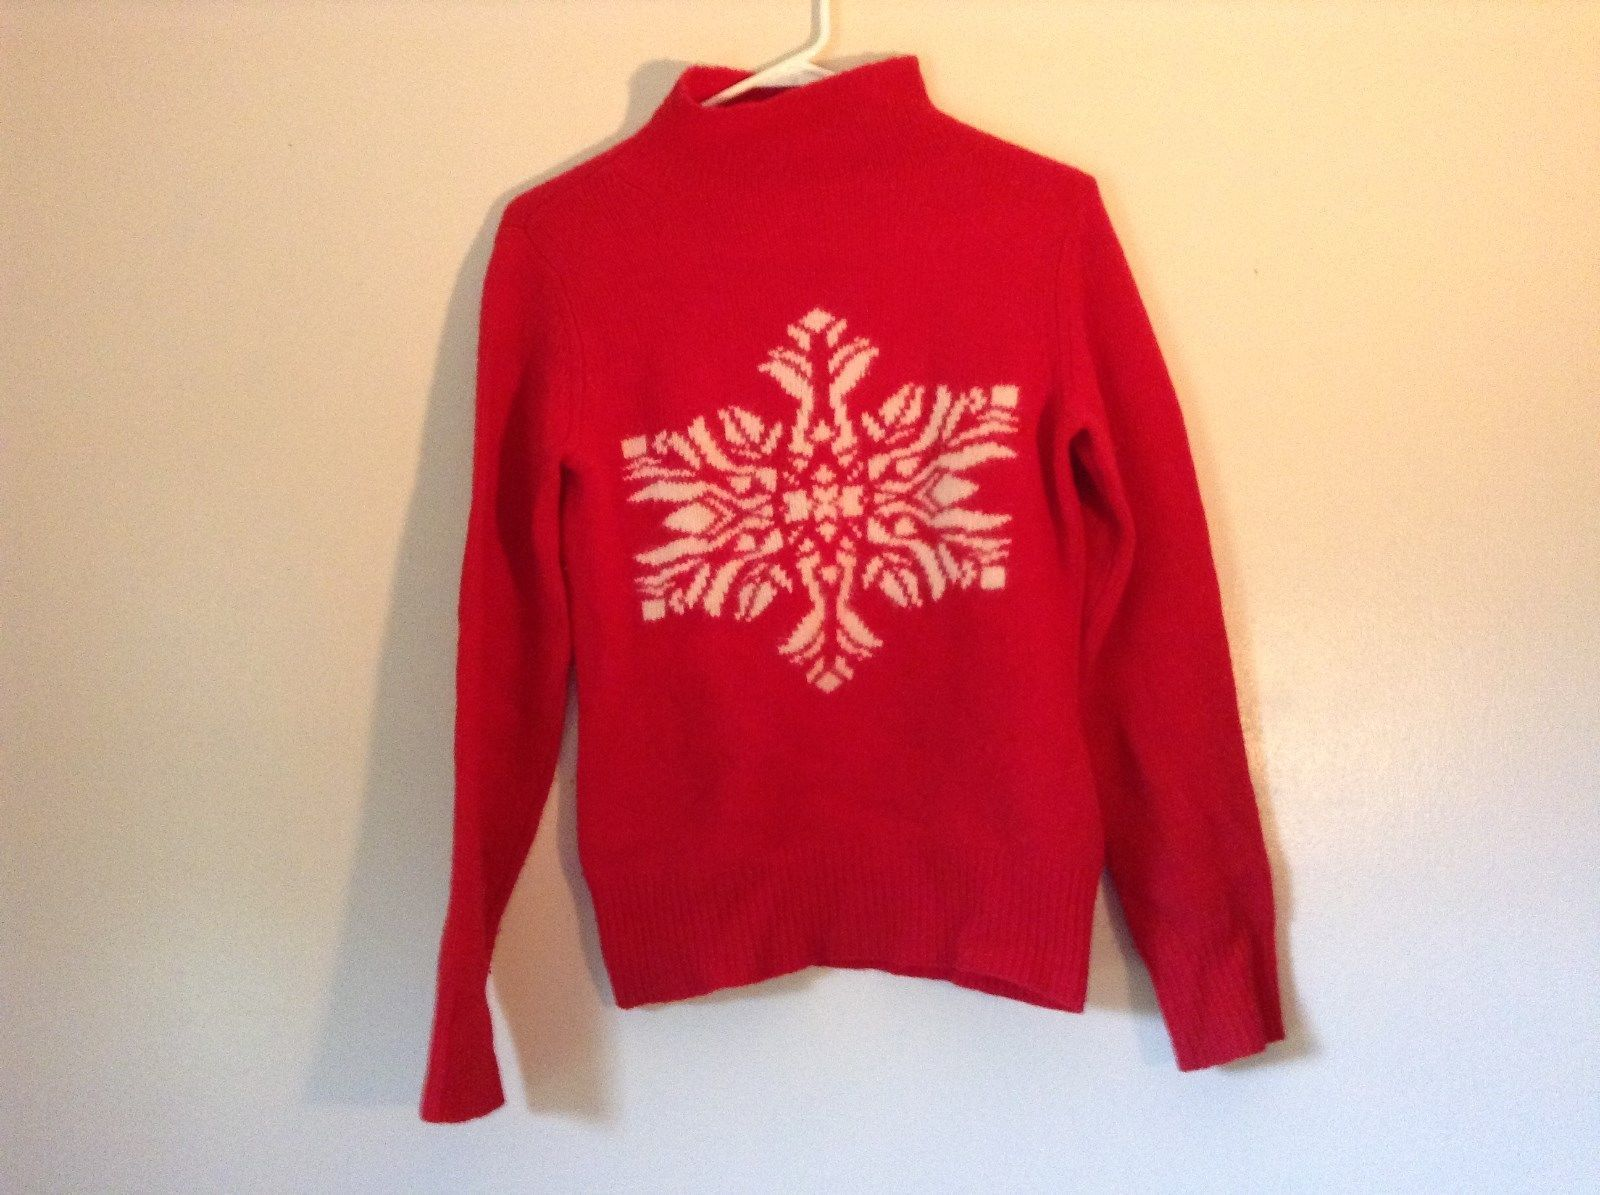 Red Turtleneck Sweater 100 Percent Lambs Wool White Design Snowflake Size Small